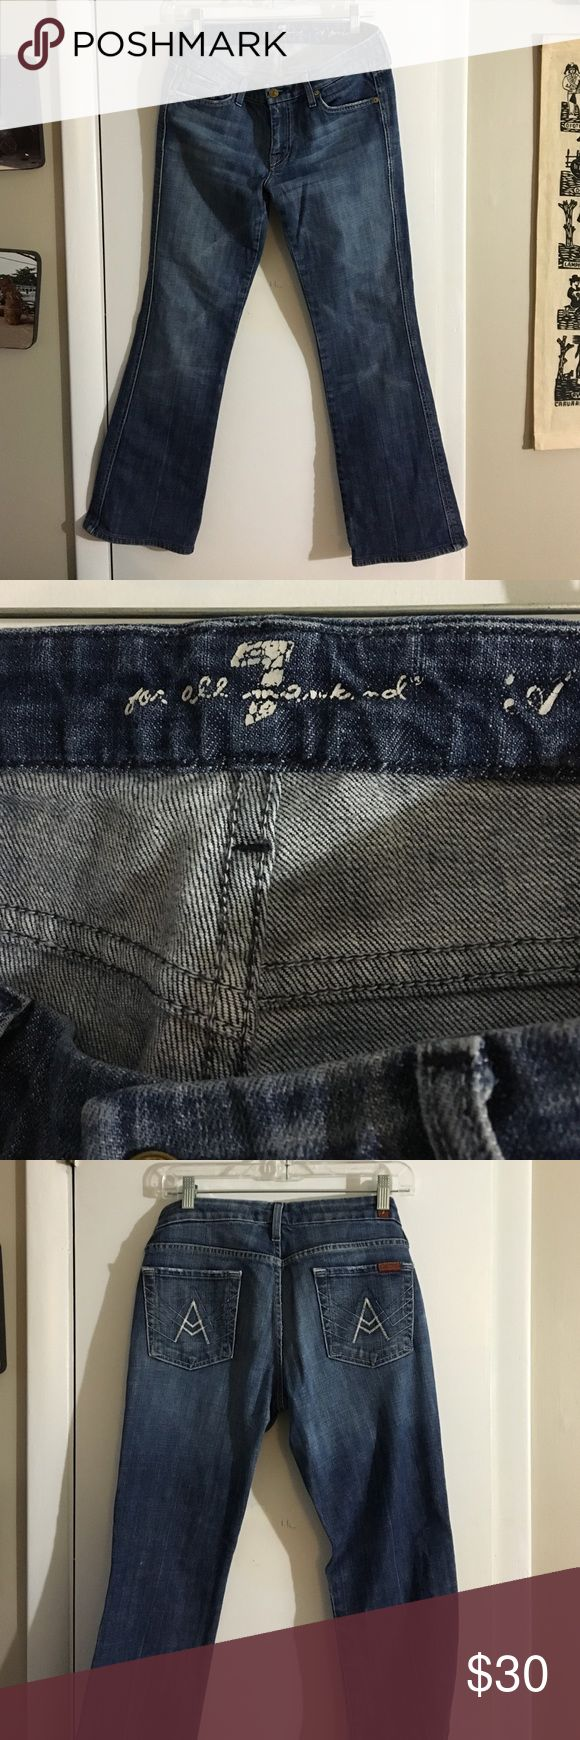 7 for all man kind boot cut jeans Denim bootcut jeans 7 For All Mankind Jeans Boot Cut